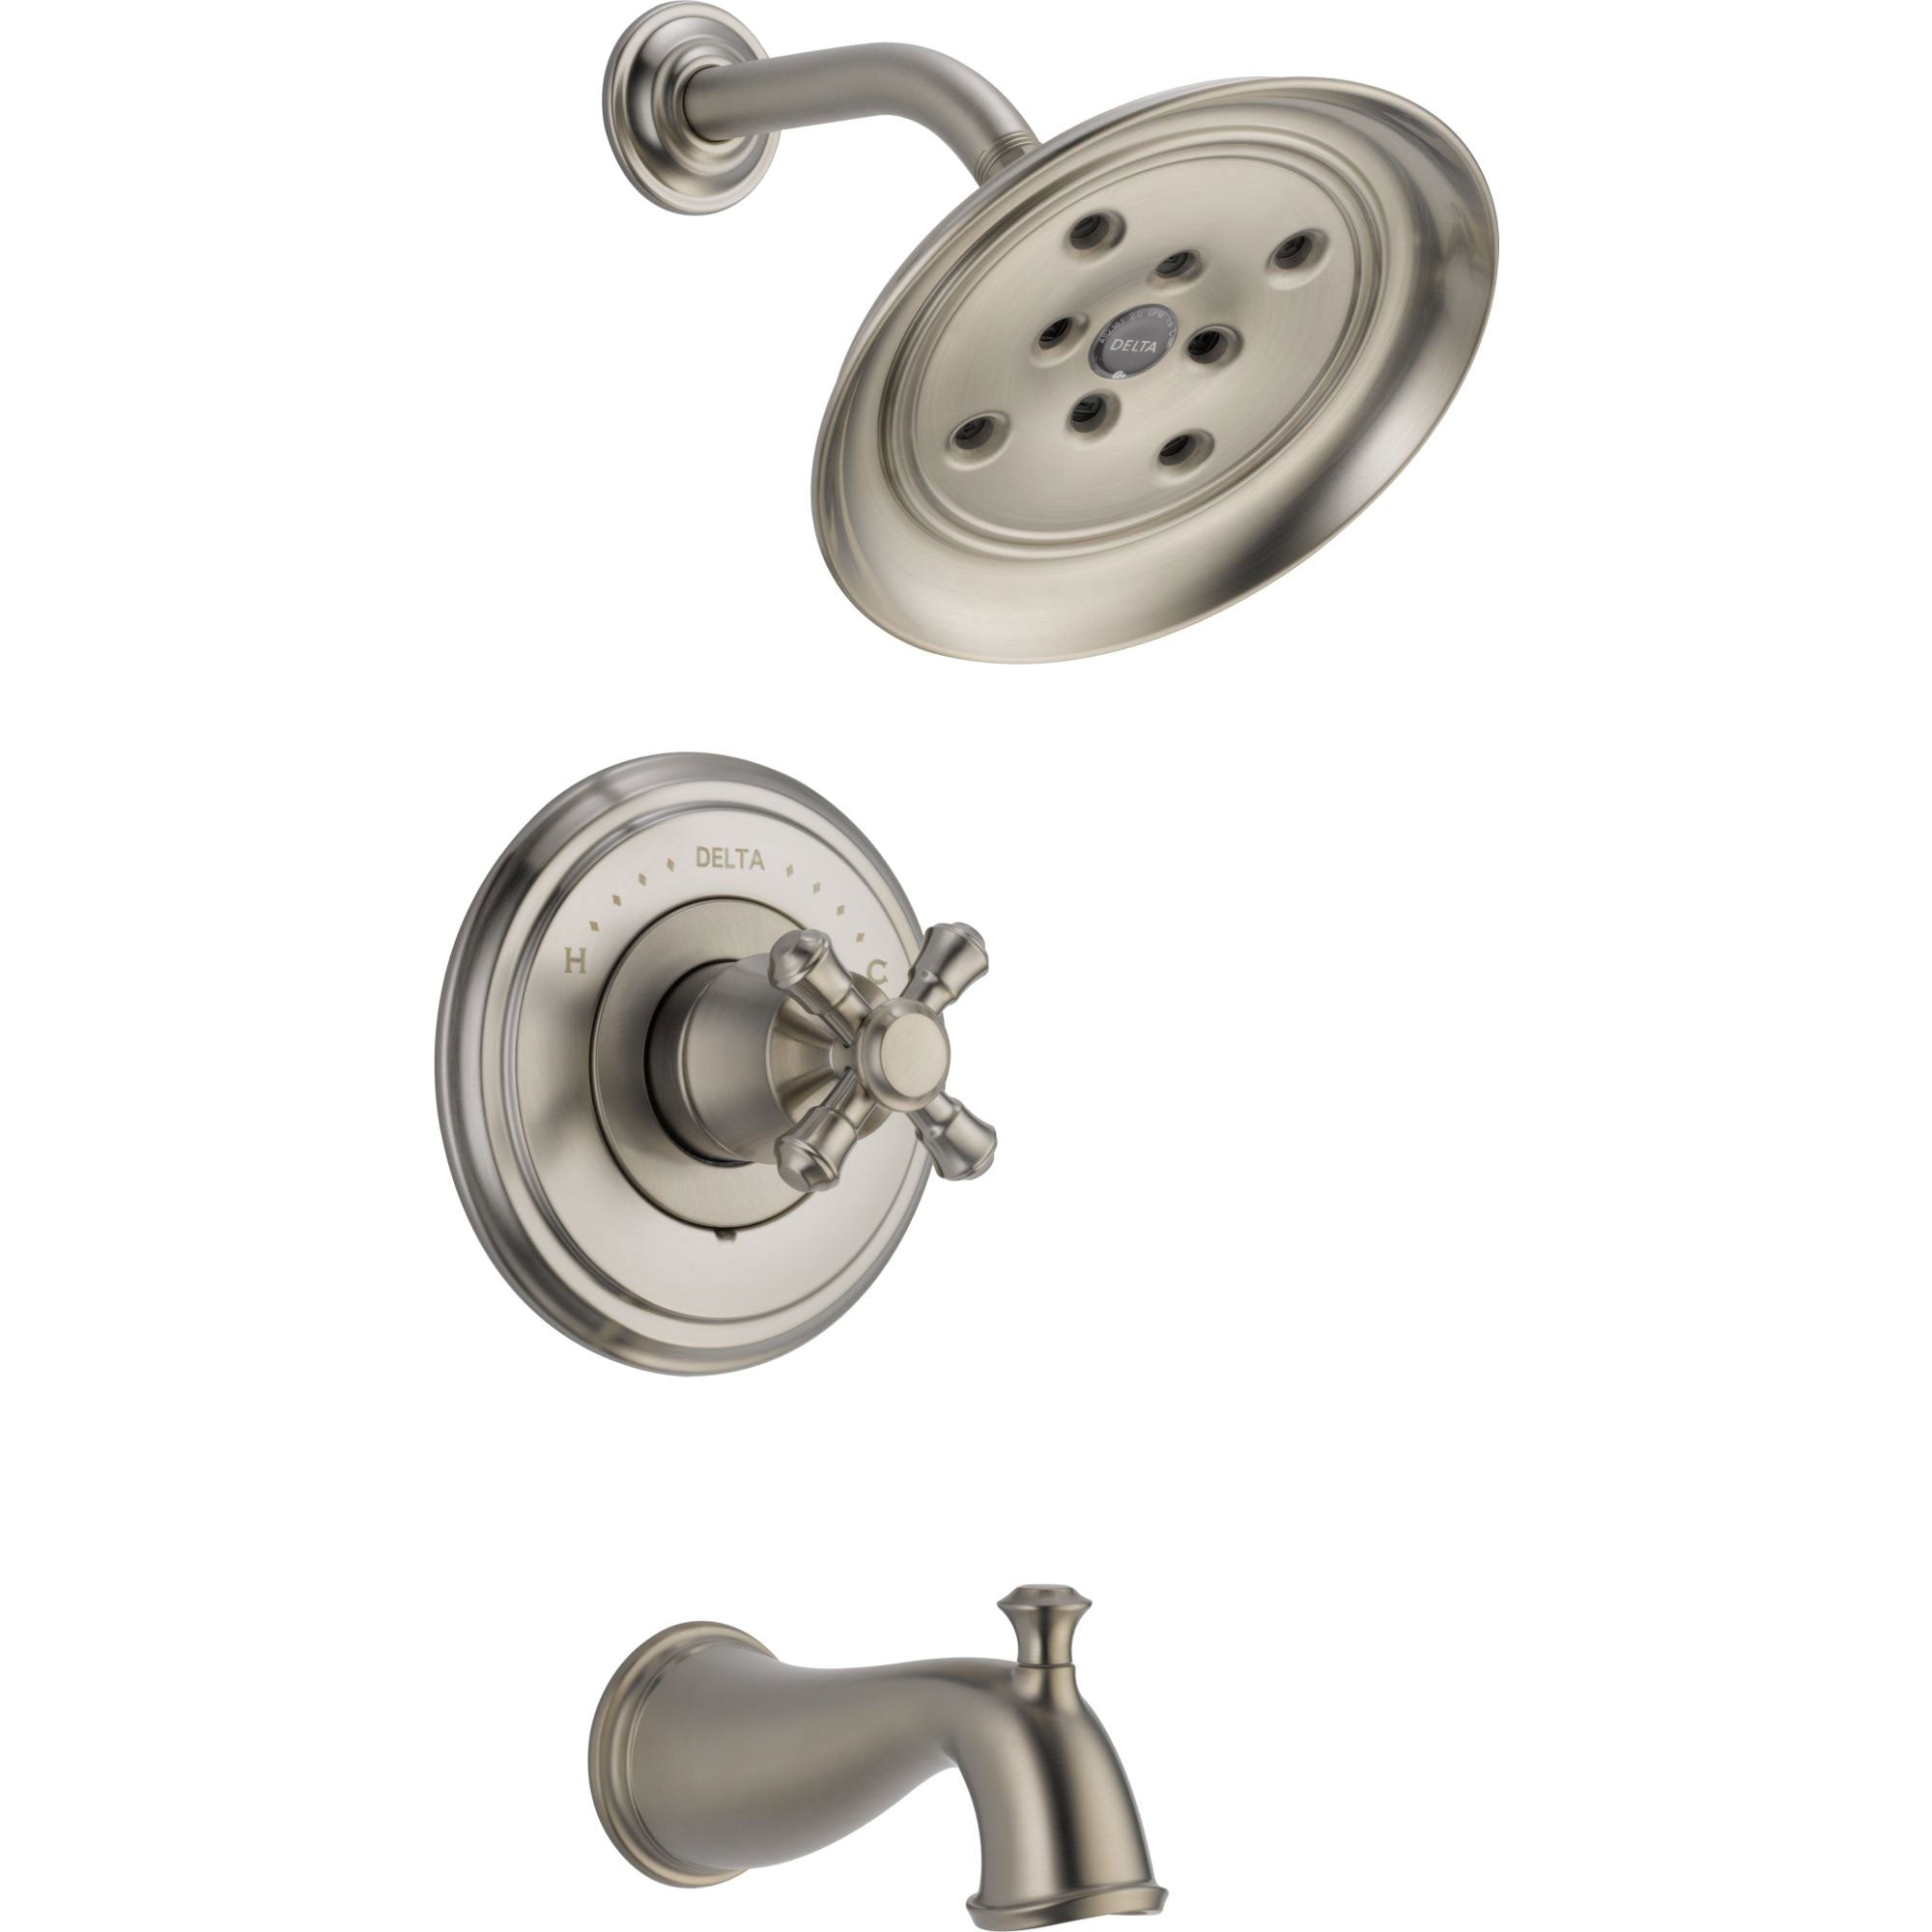 Delta Cassidy Stainless Steel Finish 14 Series Tub and Shower Combination Faucet INCLUDES Rough-in Valve and Single Cross Handle D1158V